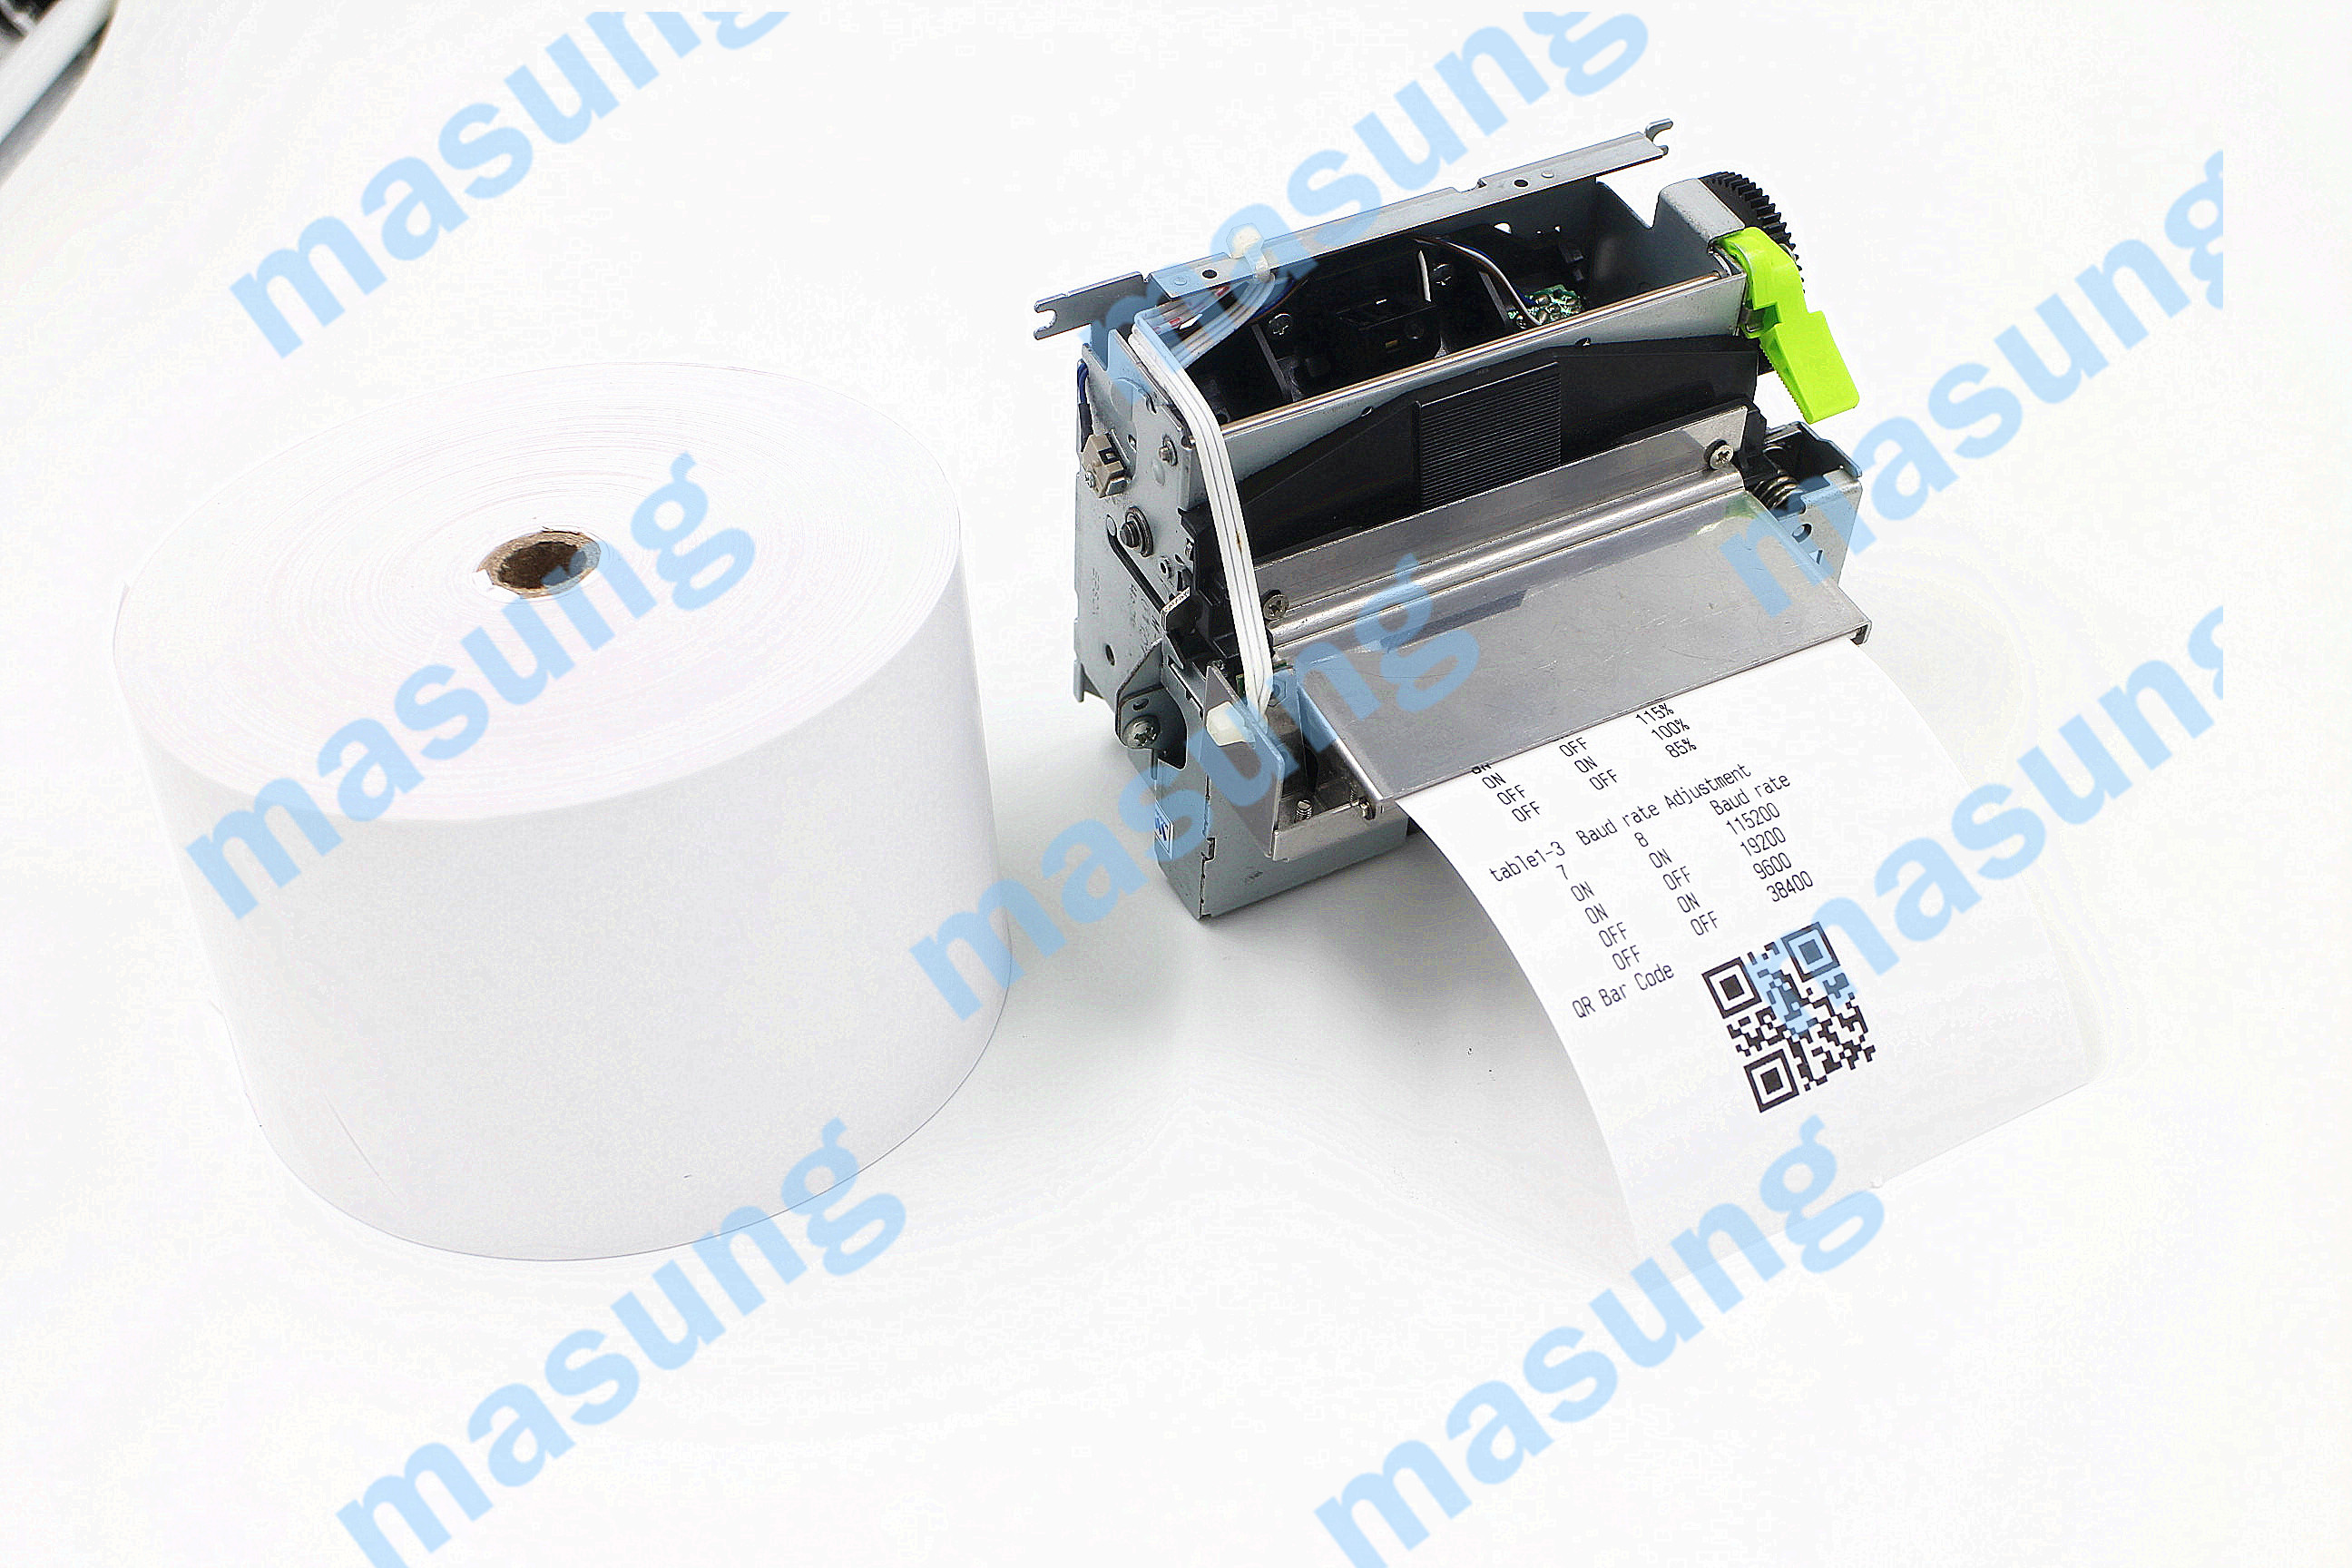 3 inch panel mount printers